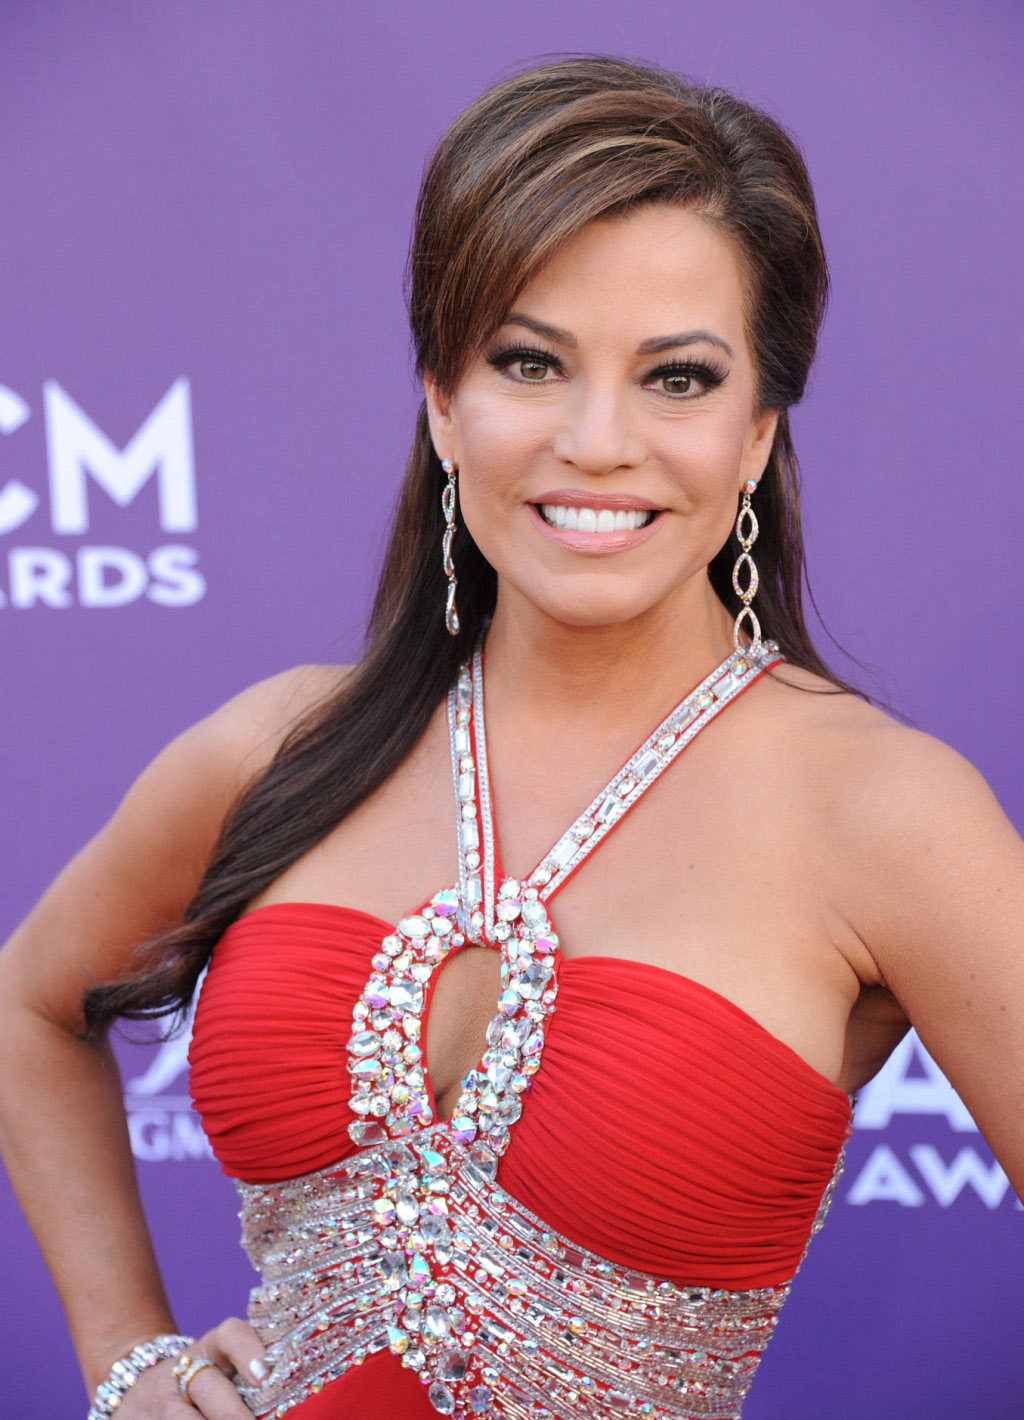 Robin meade in a red dress on the red carpet sexy leg cross - Robin meade swimsuit ...